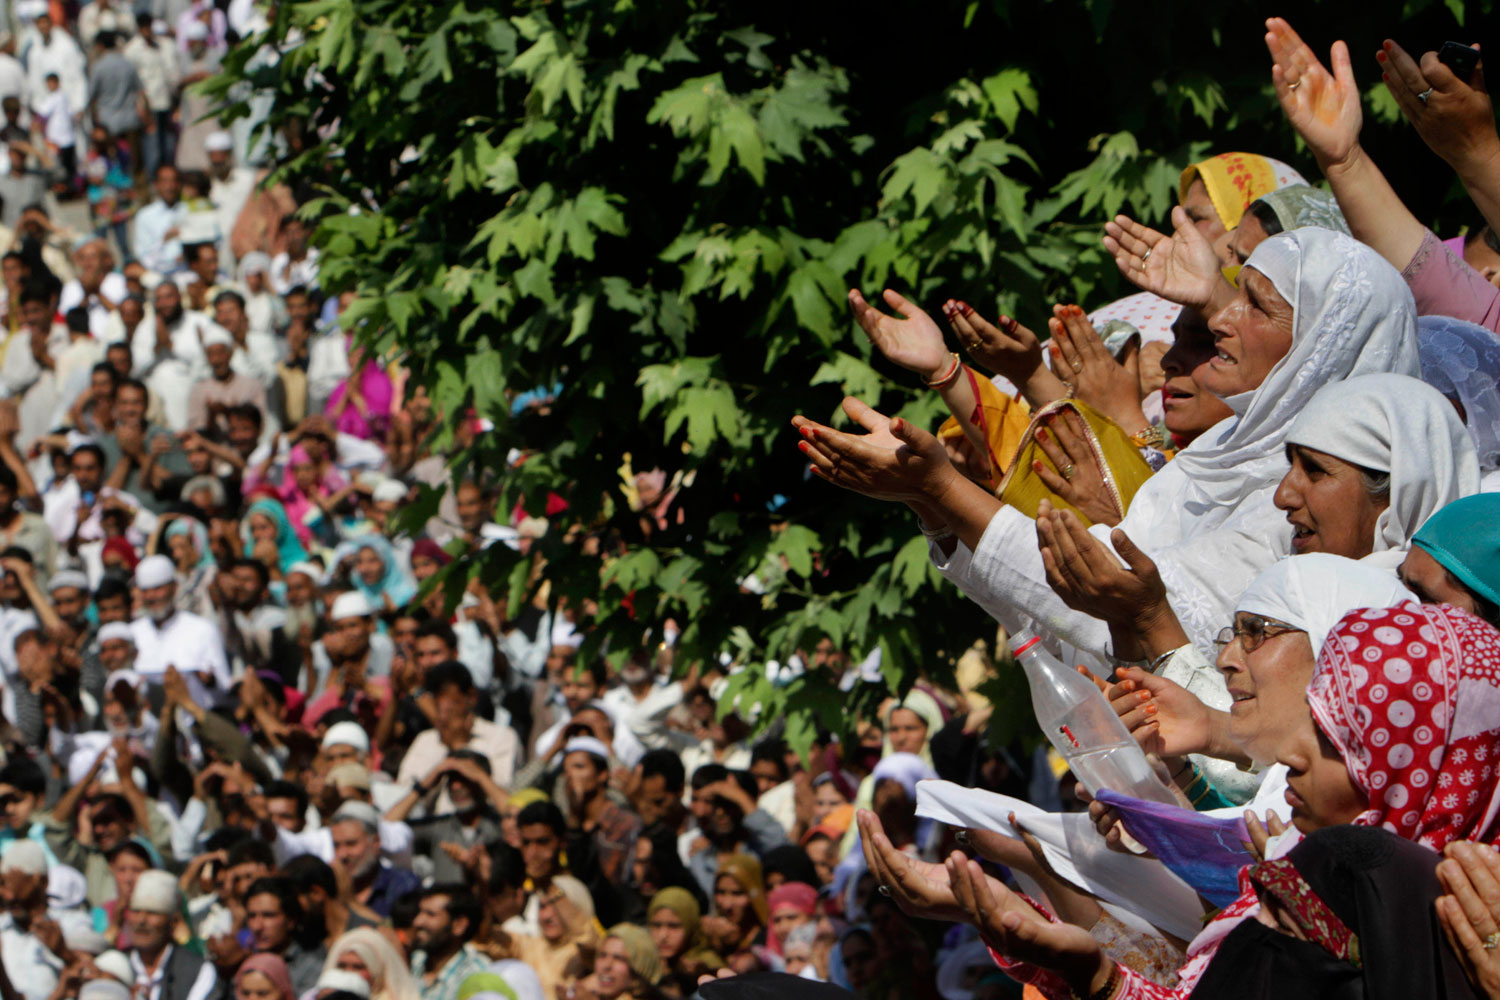 July 1, 2011. Kashmiri Muslim women pray as the head priest, unseen, displays a holy relic believed to be a hair from the beard of Prophet Mohammed, at the Hazratbal Shrine, on the outskirts of Srinagar, India. Devotees thronged the Hazratbal shrine on the second day of the Muslim festival of Mehraj-u-Alam, believed to mark the ascension of Prophet Mohammed to Heaven.